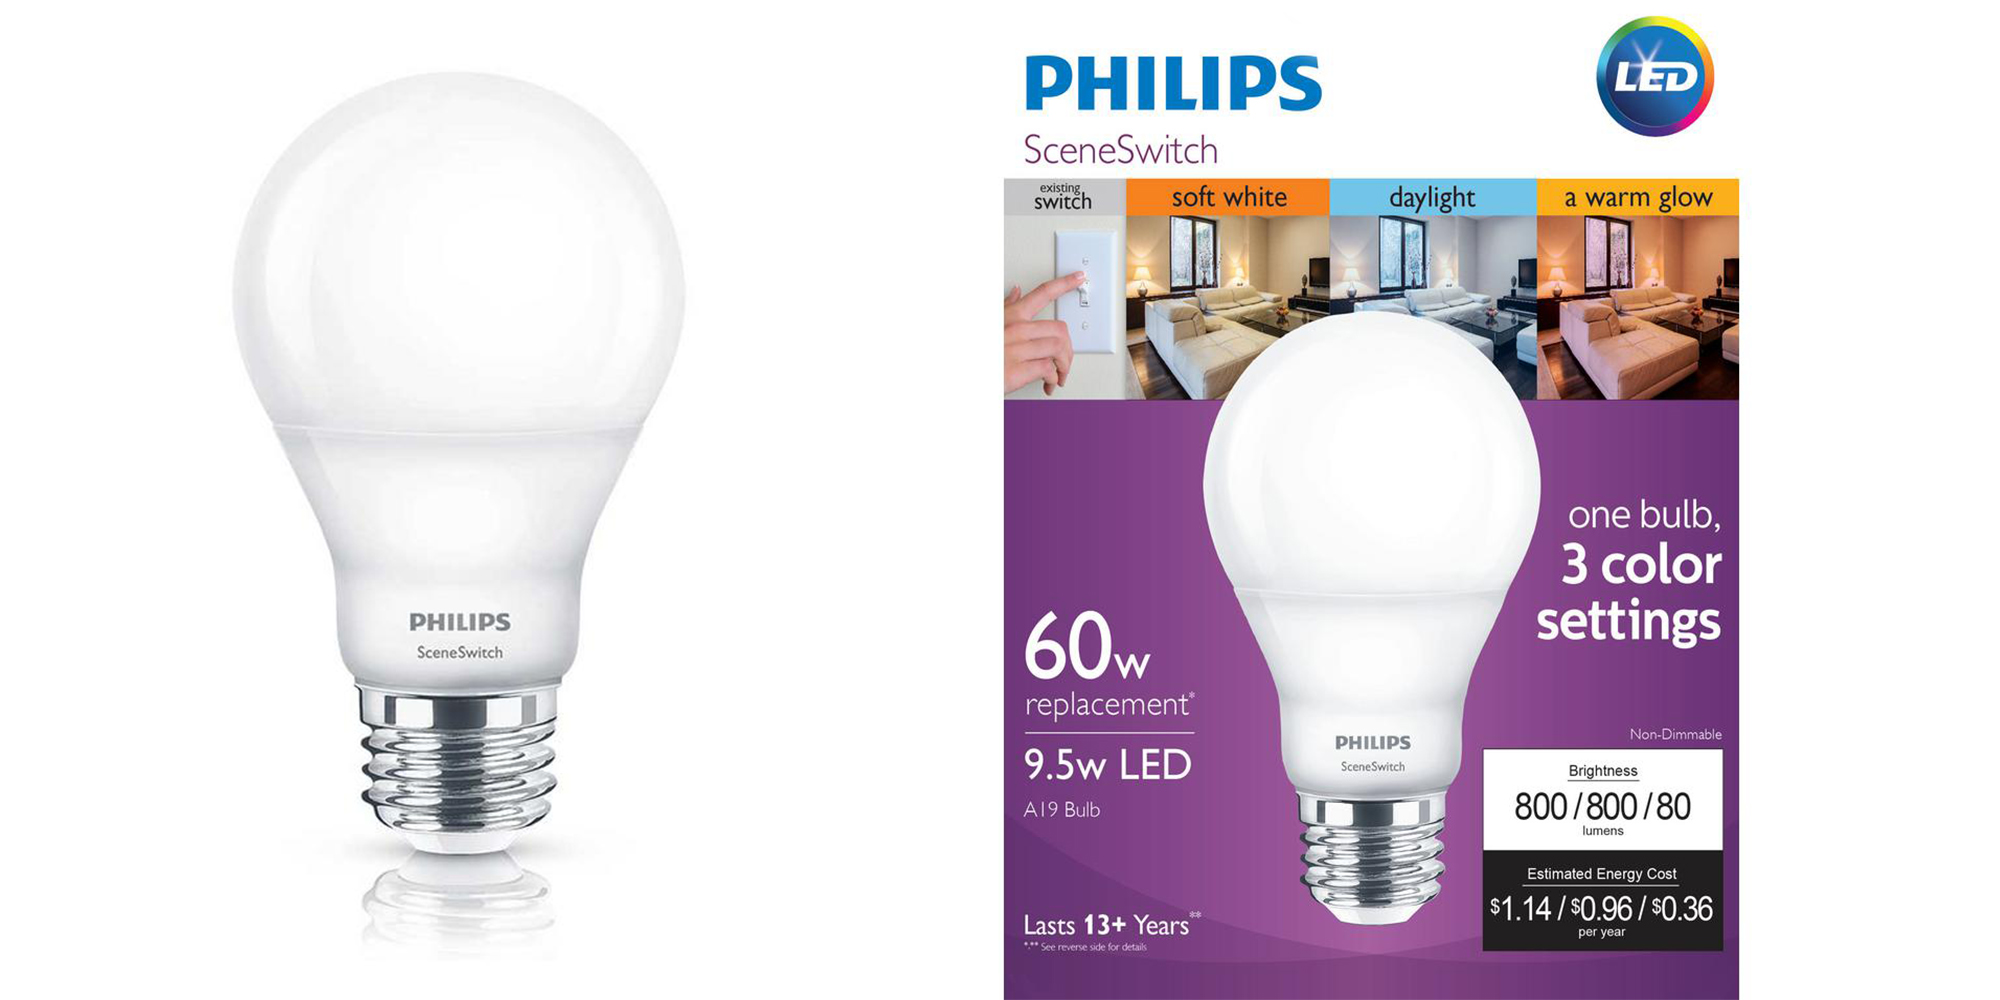 philips-sceneswitch-led-bulb